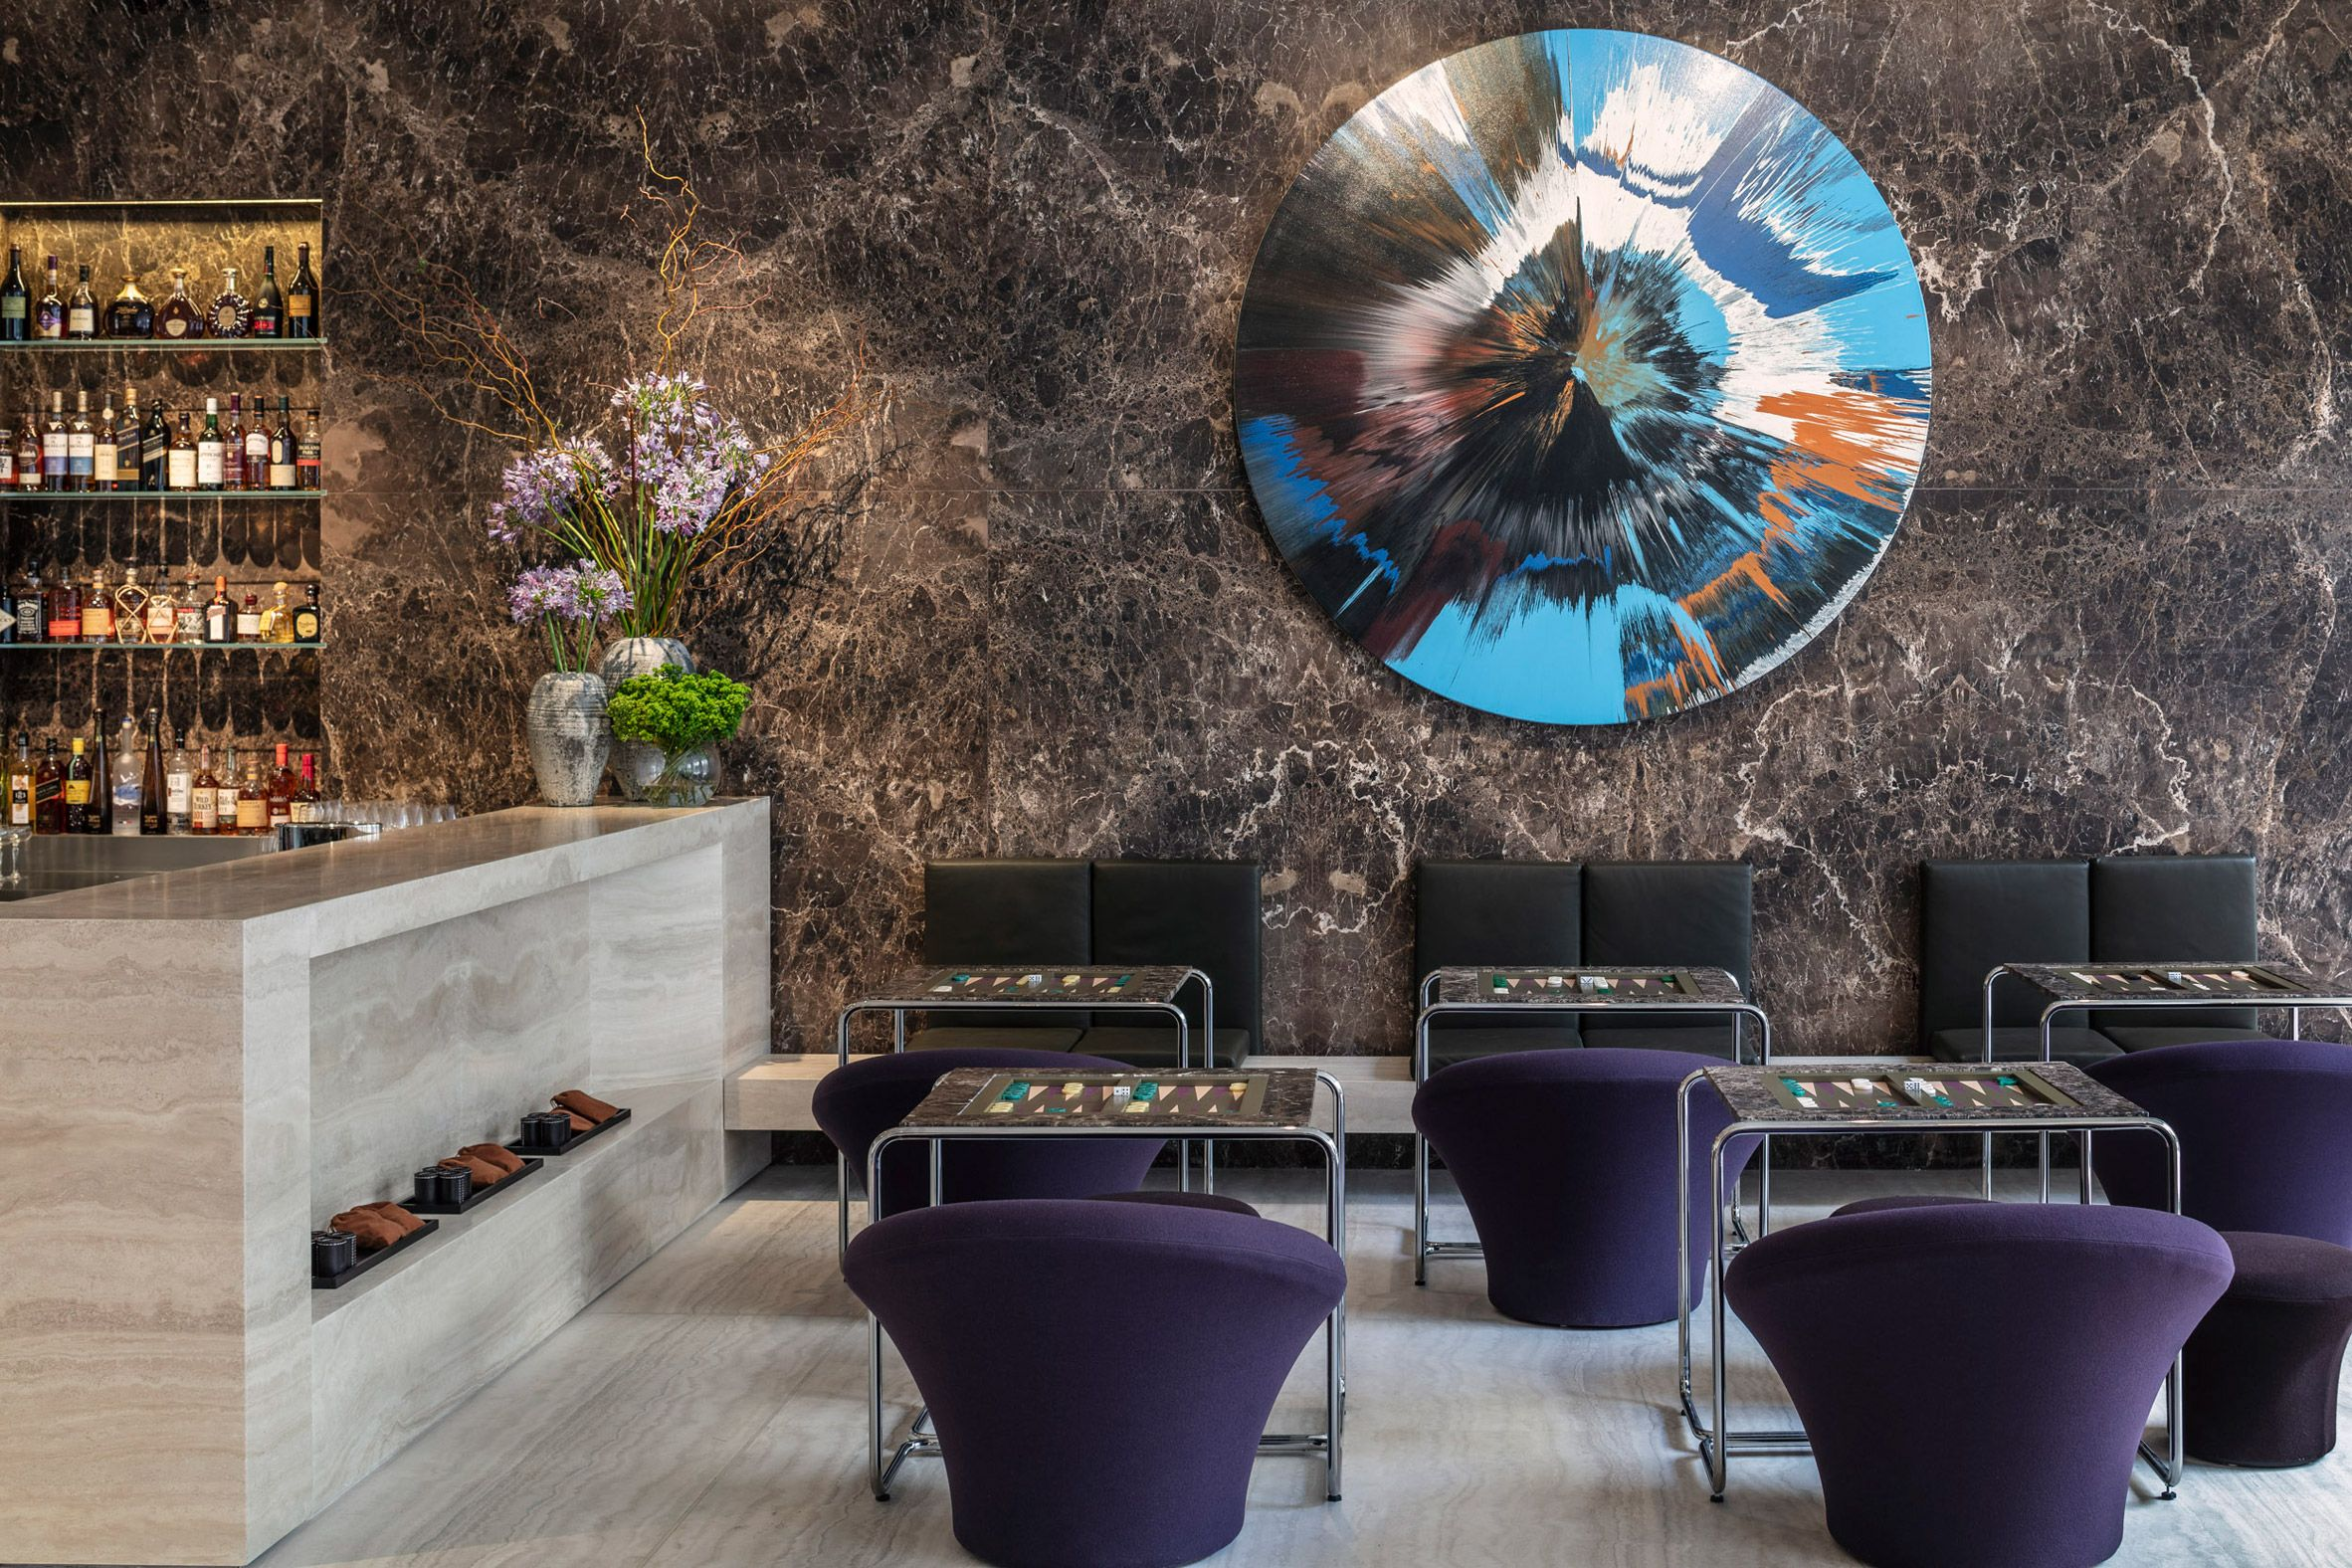 The Jaffa lobby bar featuring a magnificent Damian Hurst Spin painting